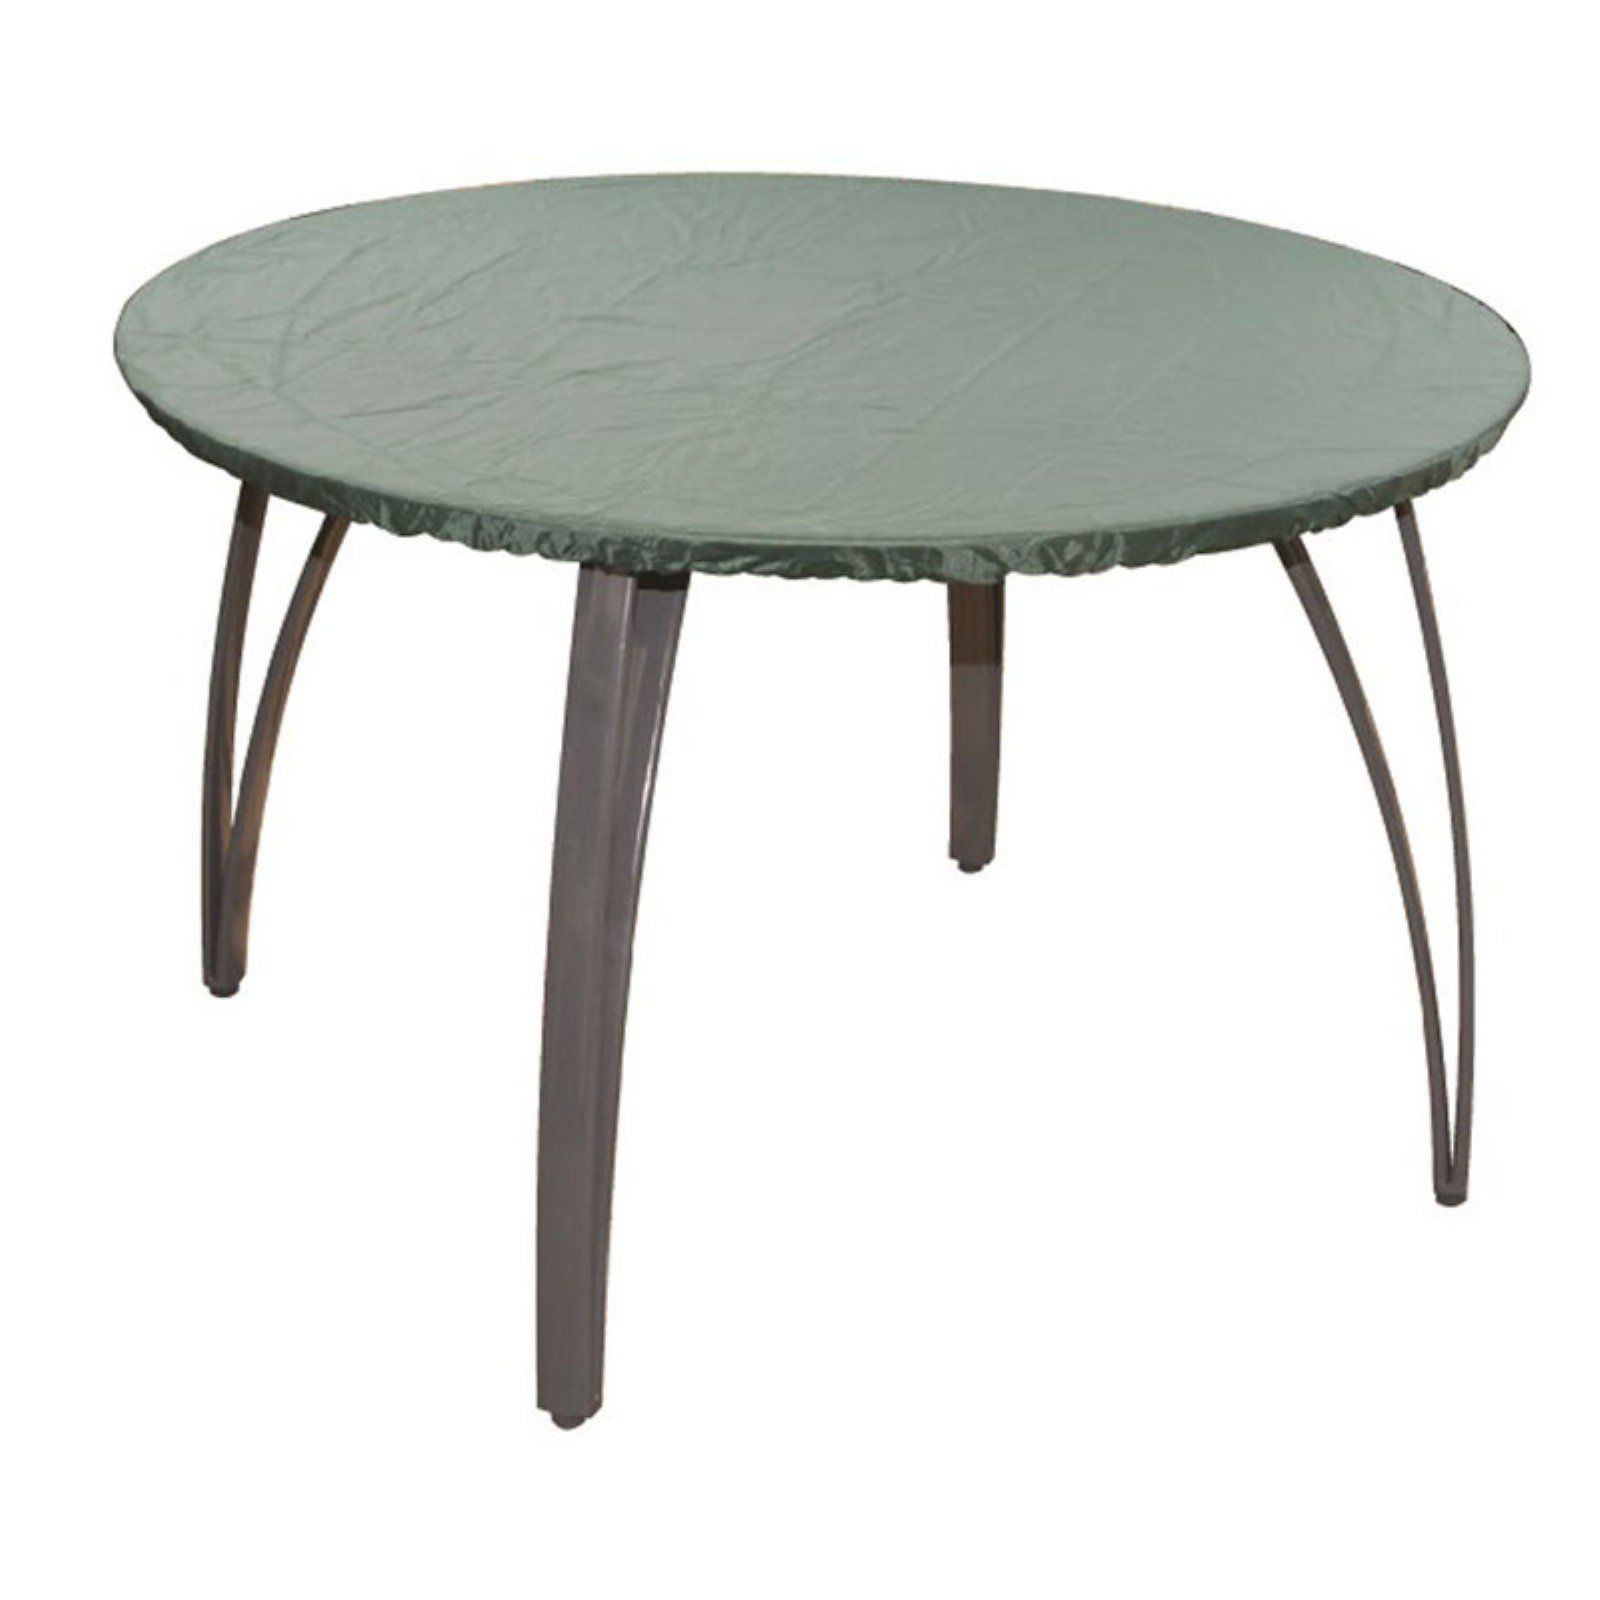 Bosmere 47 In Round Outdoor Table Top Cover Outdoor Table Tops Round Outdoor Table Outdoor Tables